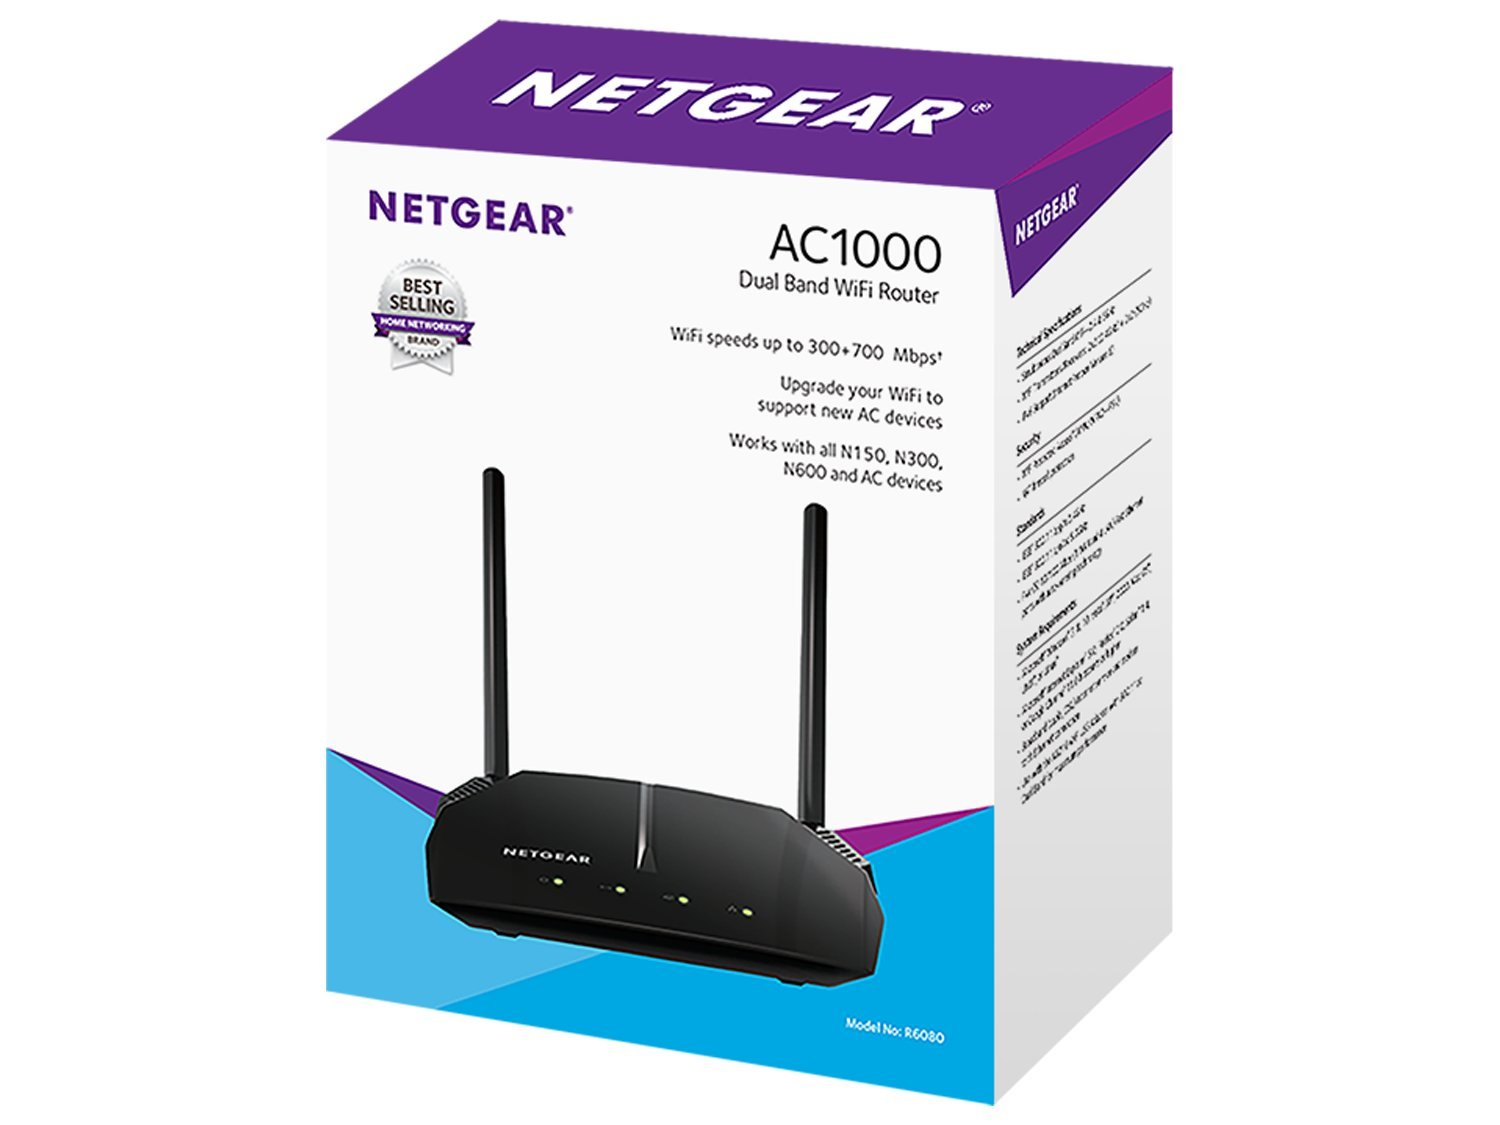 NETGEAR AC1000 Dual Band Smart WiFi Router 5 Faster WiFi - Now up to 1000 Mbps (300 + 700) Upgrade your WiFi to support new AC devices. Memory:8 MB flash and 64 MB RAM Cat-6 Ethernet patch cable for wired home and office networks